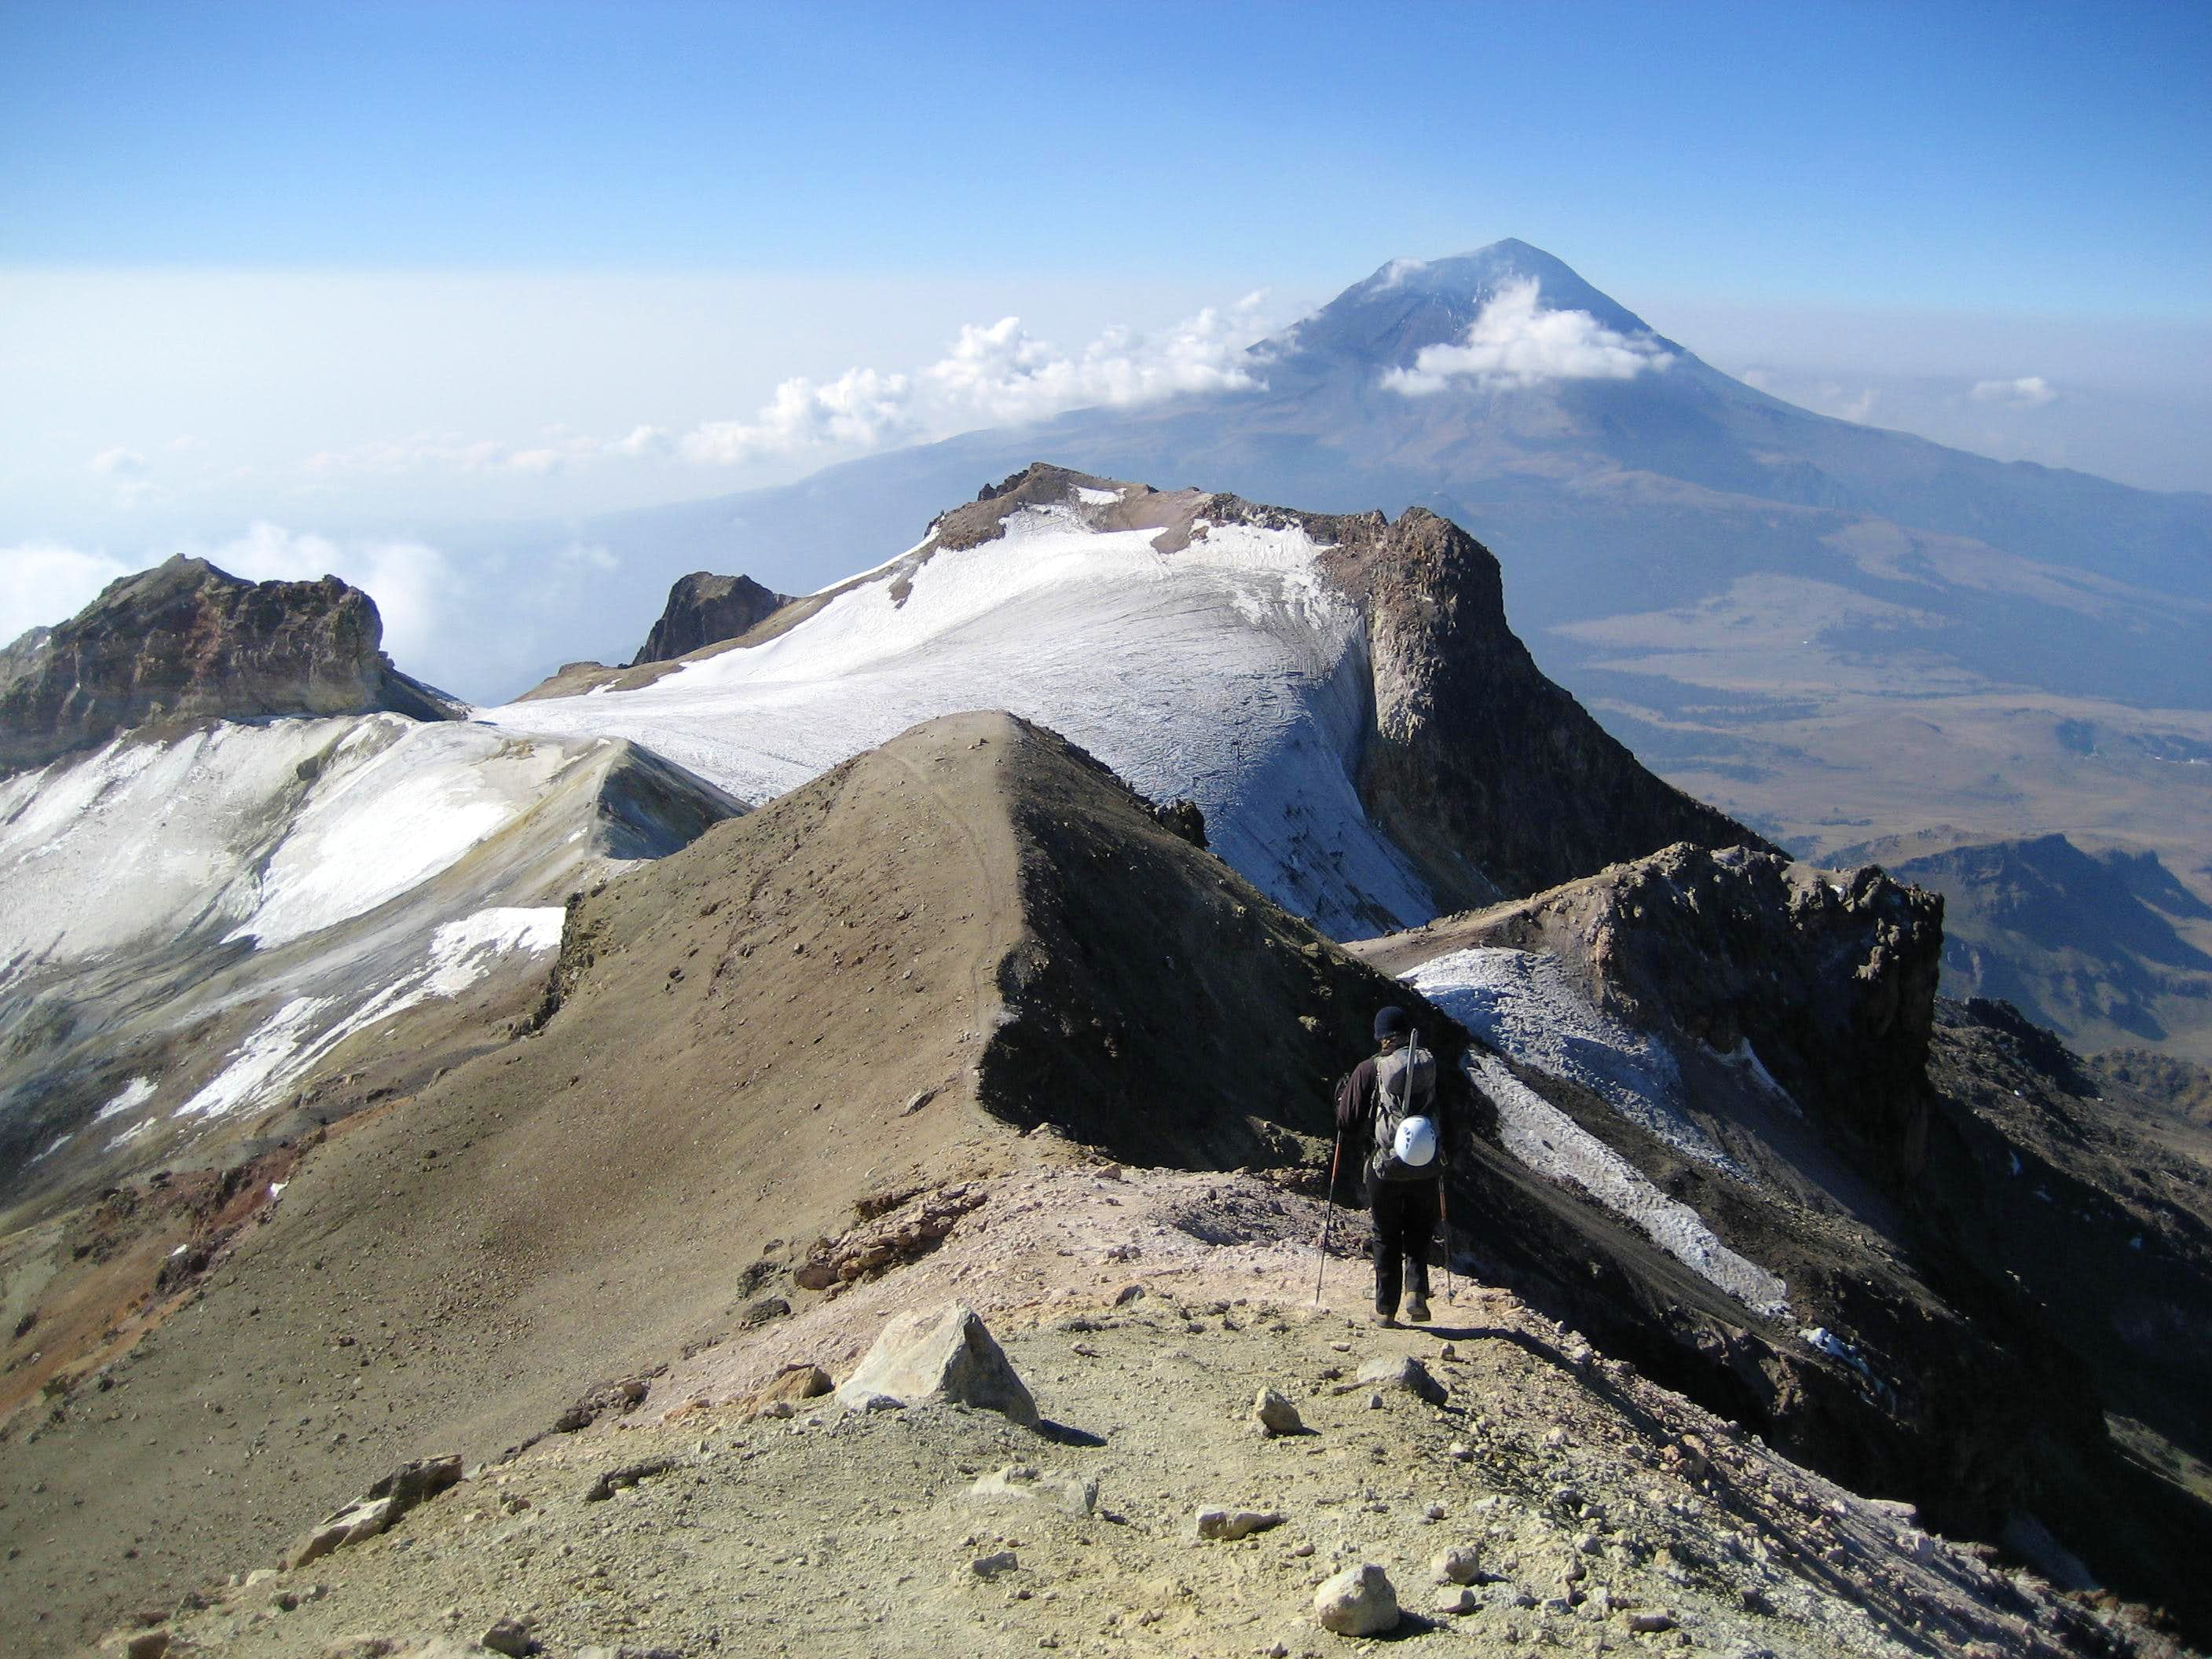 Chasing the Glaciers in Mexico: March 2007